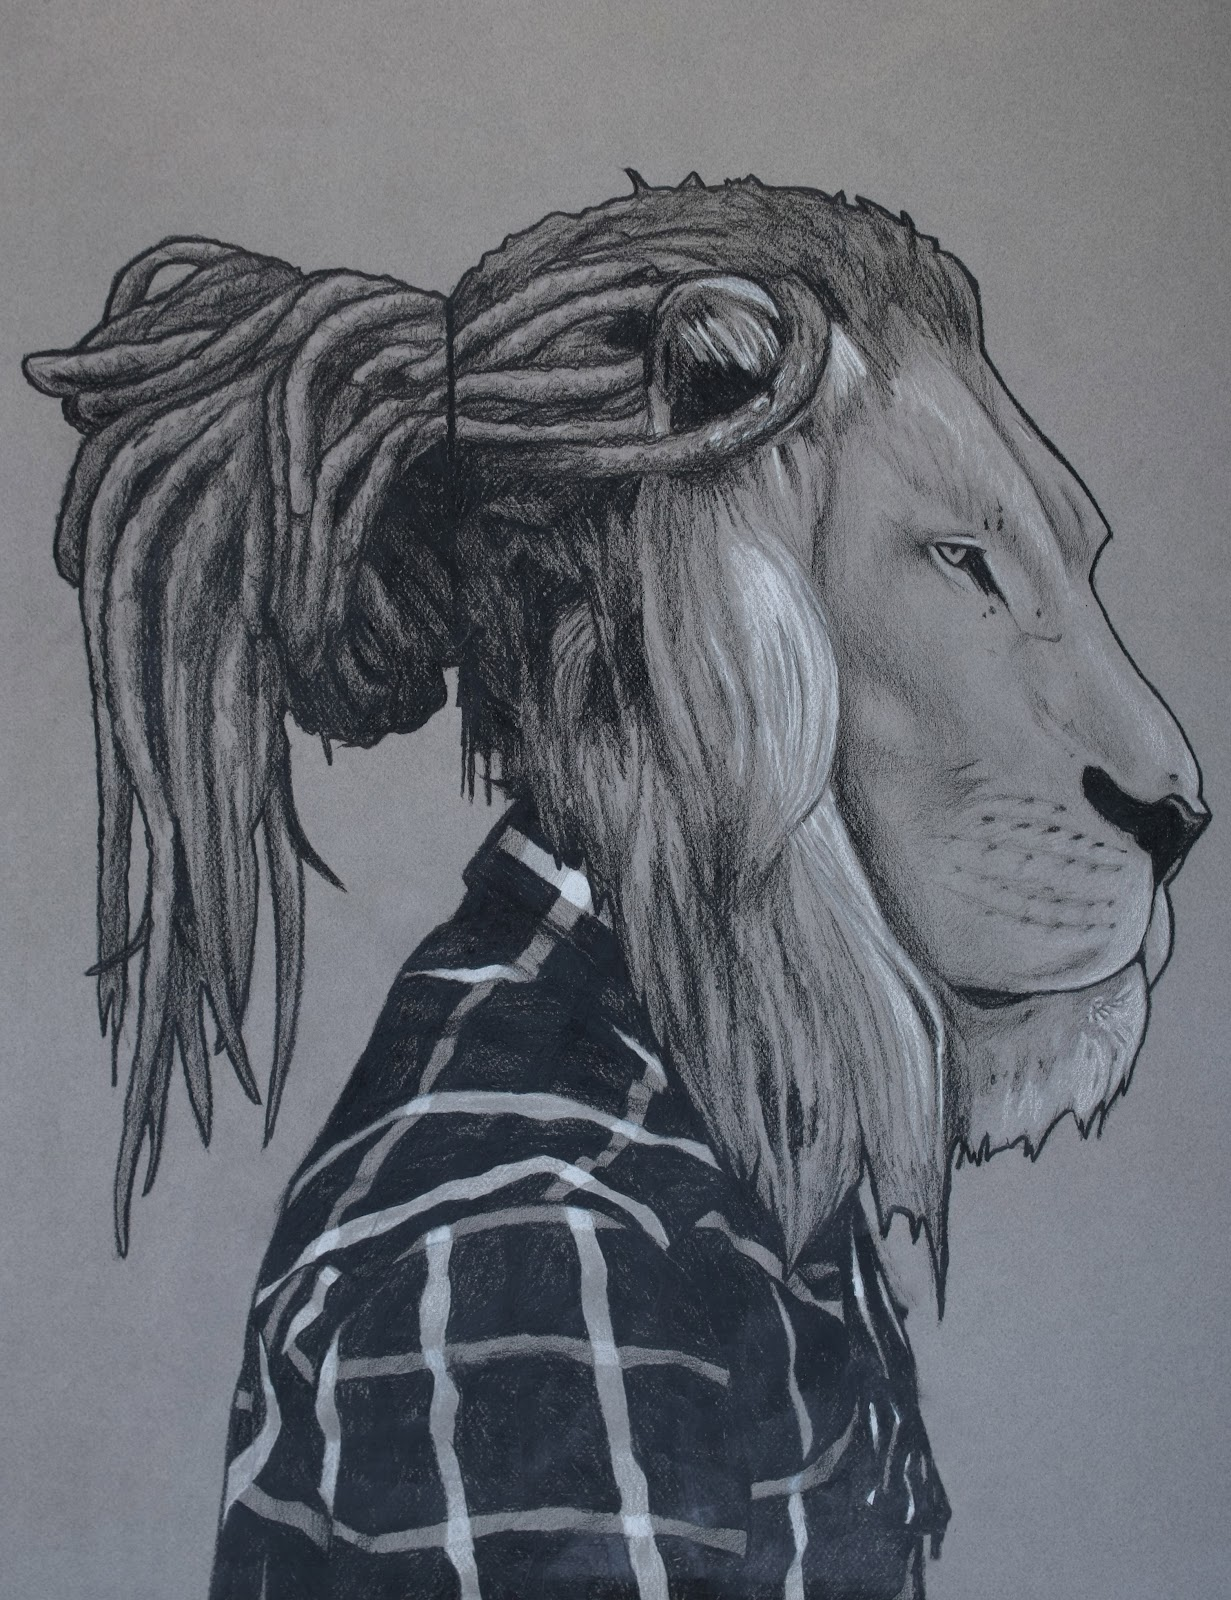 Lion with dreads tattoo drawings - photo#11